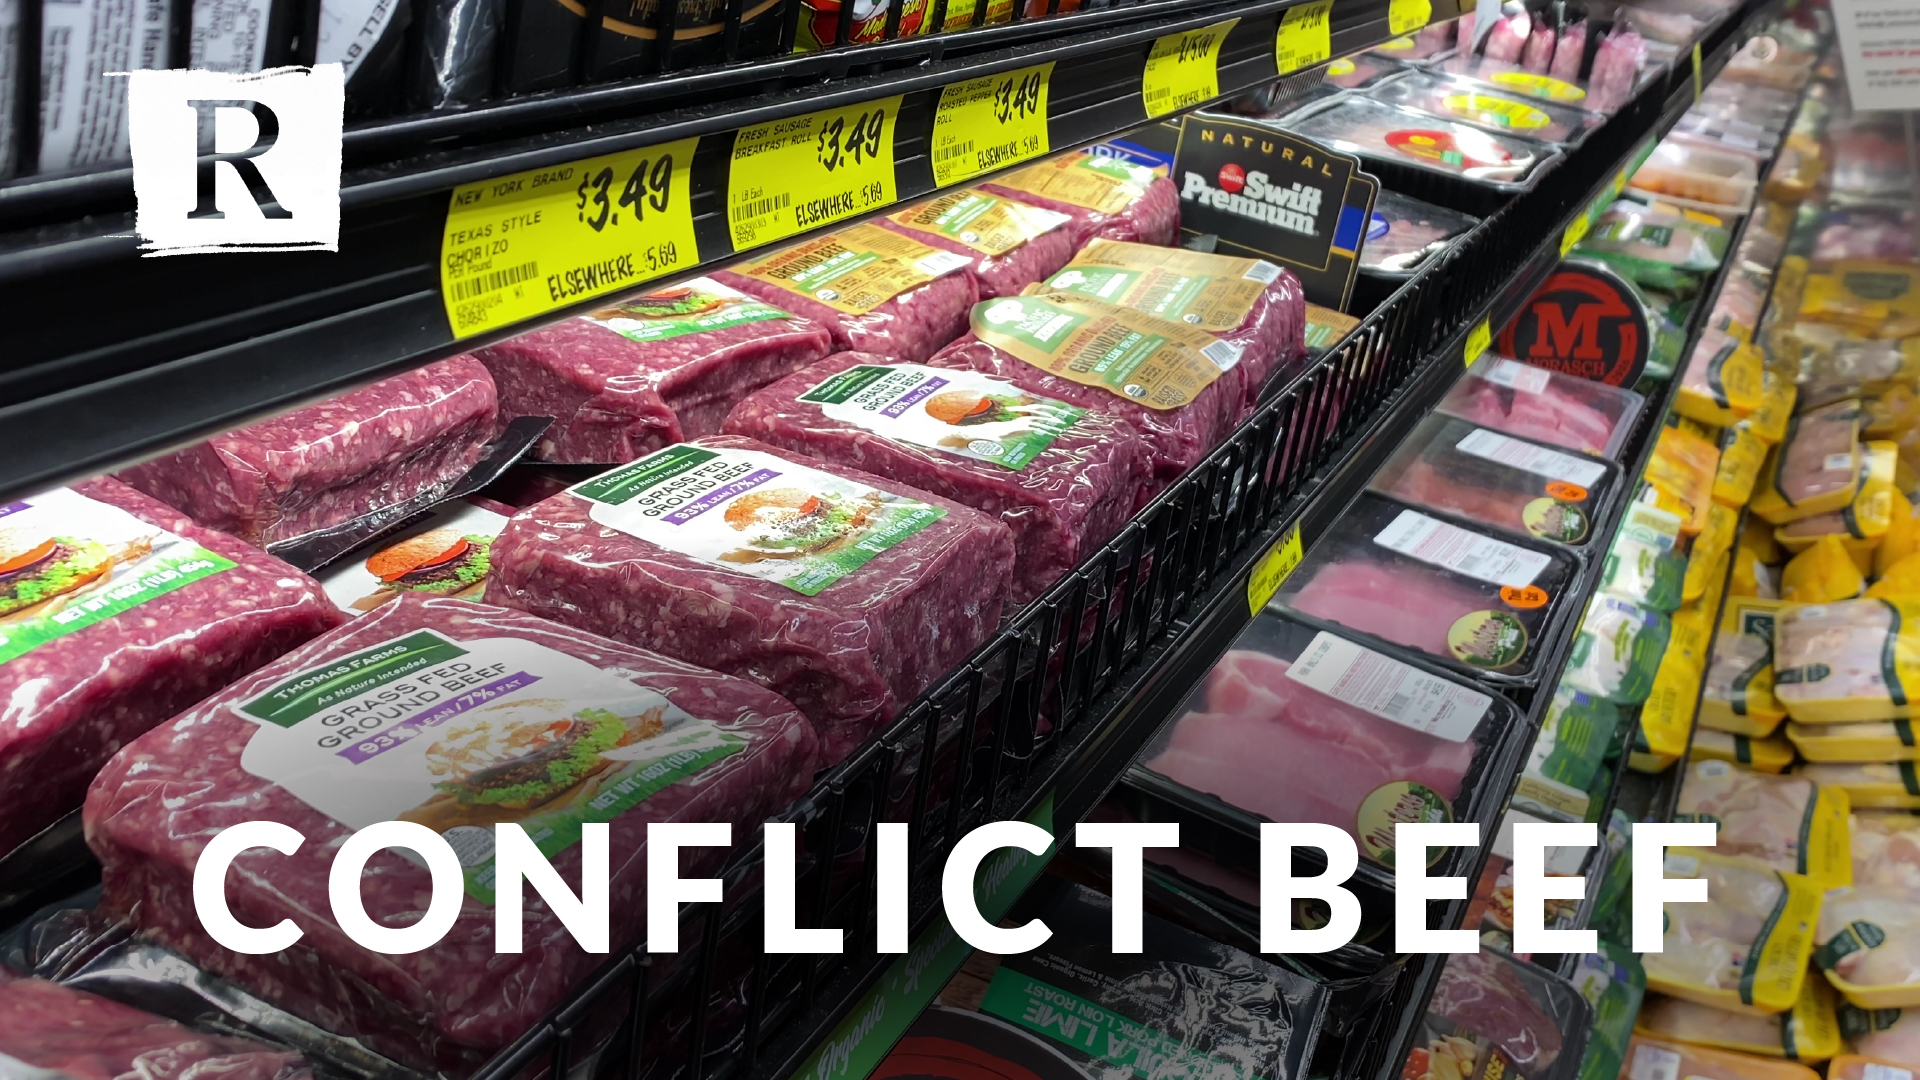 Conflict beef from Nicaragua feeds US market amid pandemic